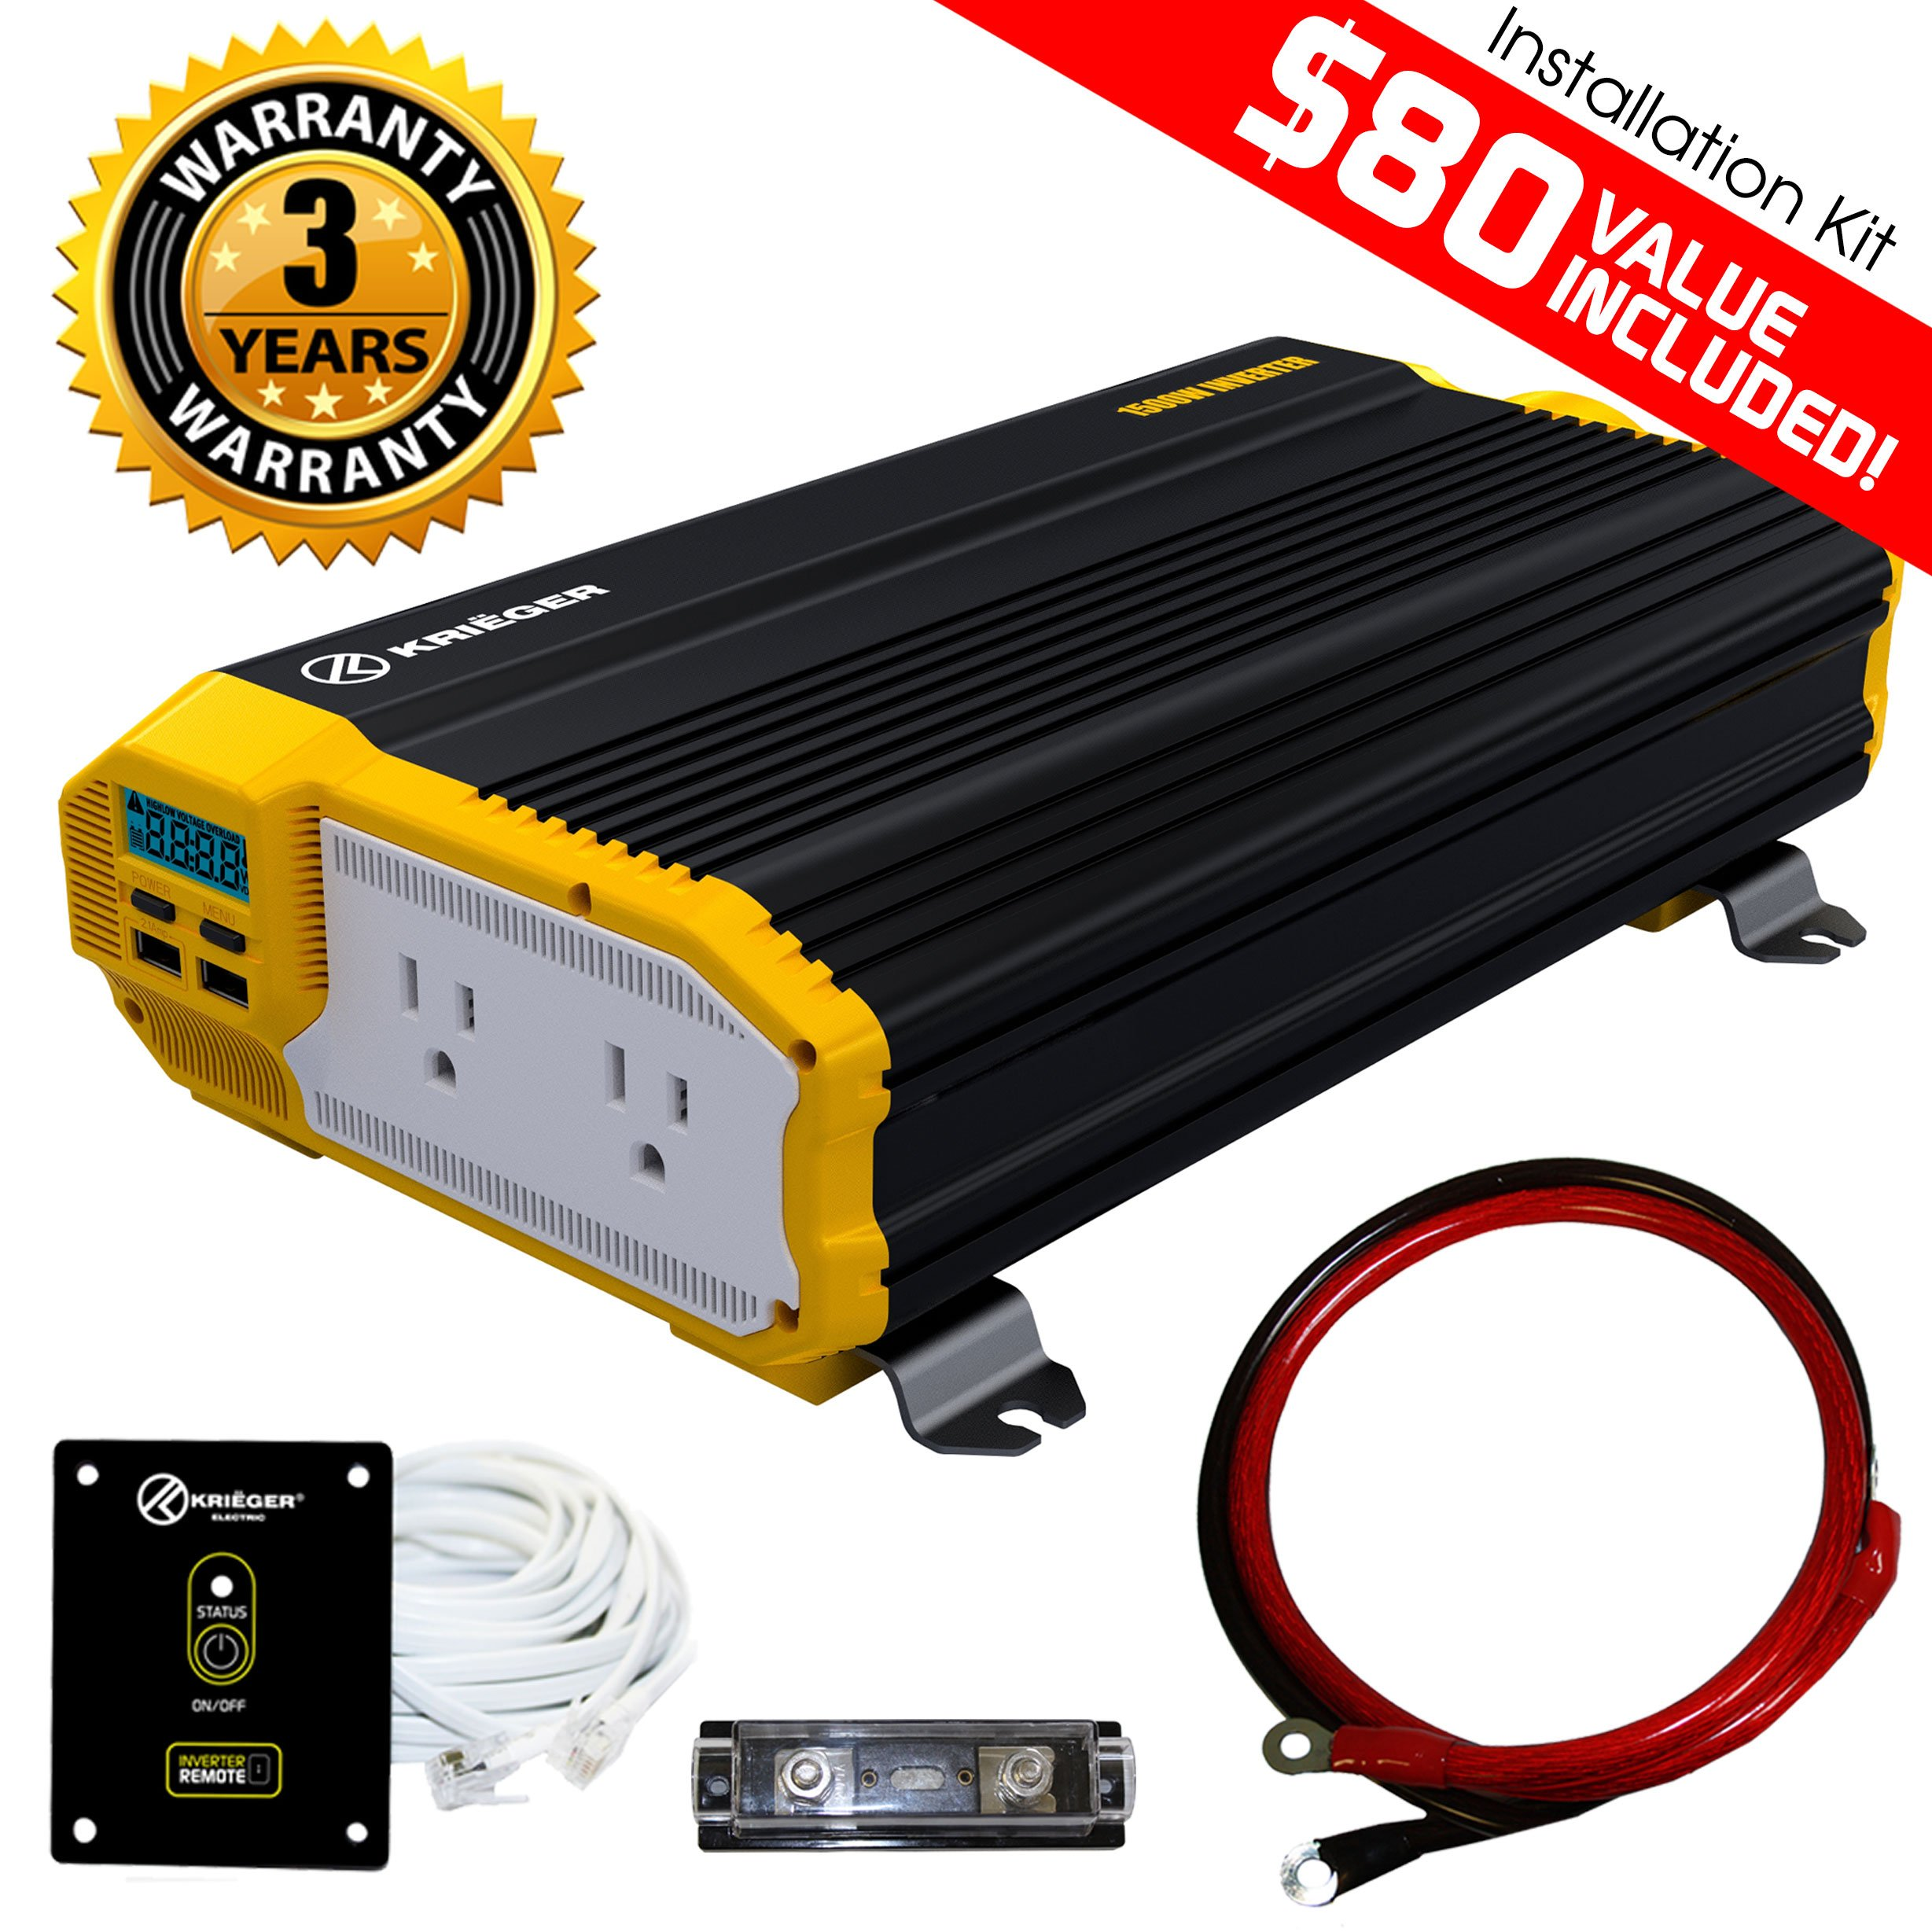 KRIËGER 1500 Watt 12V Power Inverter Dual 110V AC outlets, Installation kit included, Automotive back up power supply for Blenders, vacuums, power tools ... MET approved according to UL and CSA.